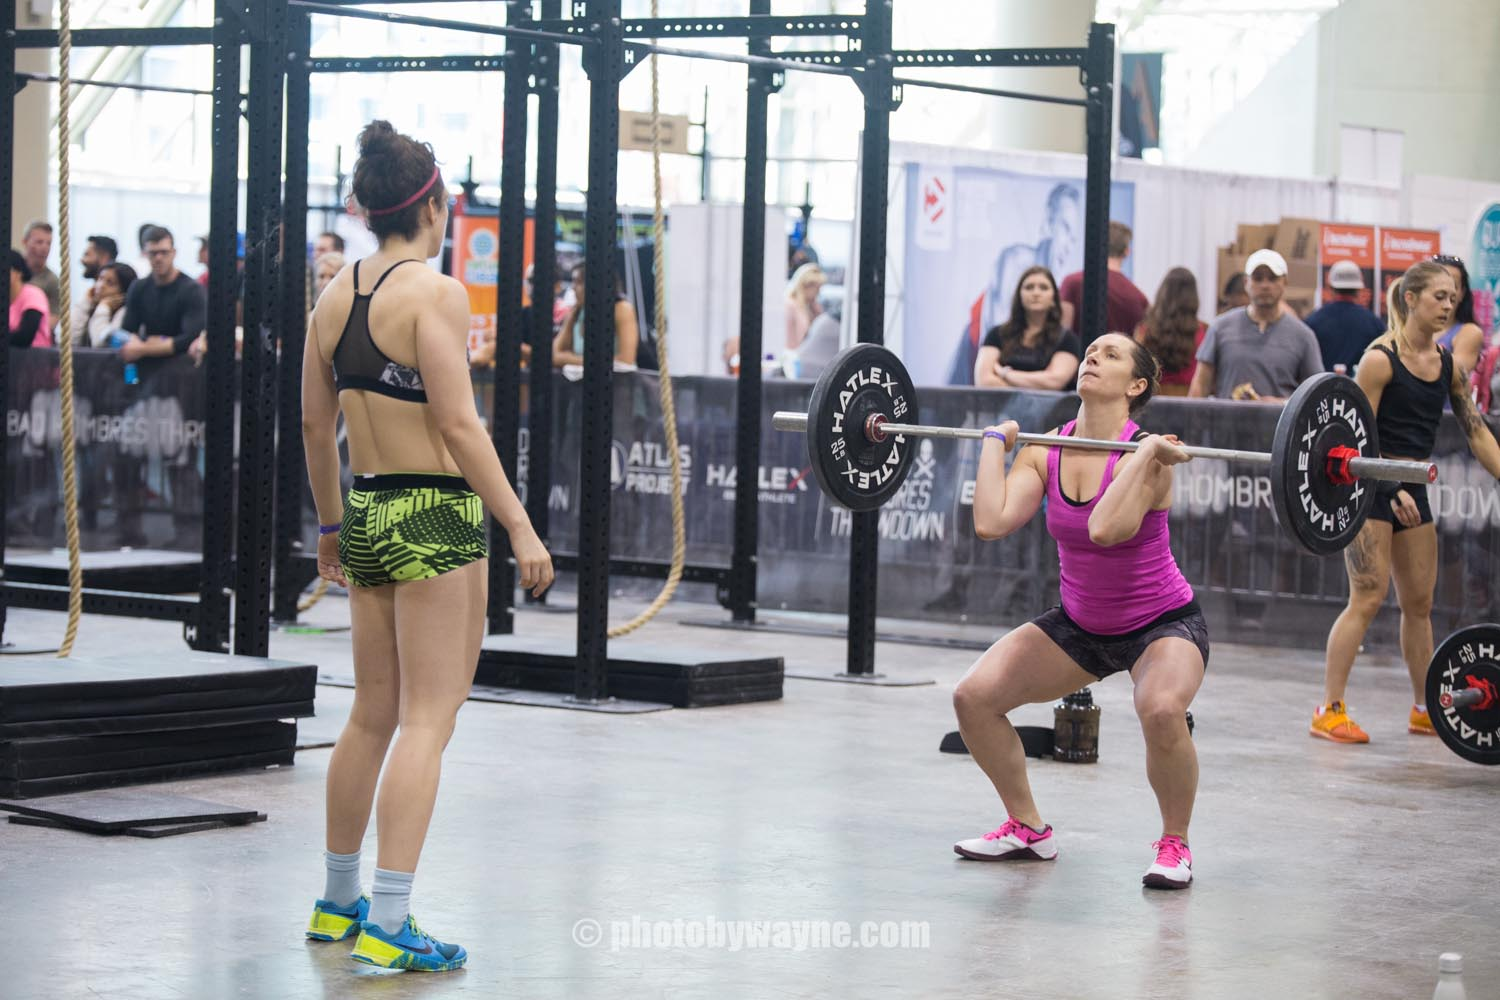 19-toronto-pro-supershow-woman-lifting-weight.jpg